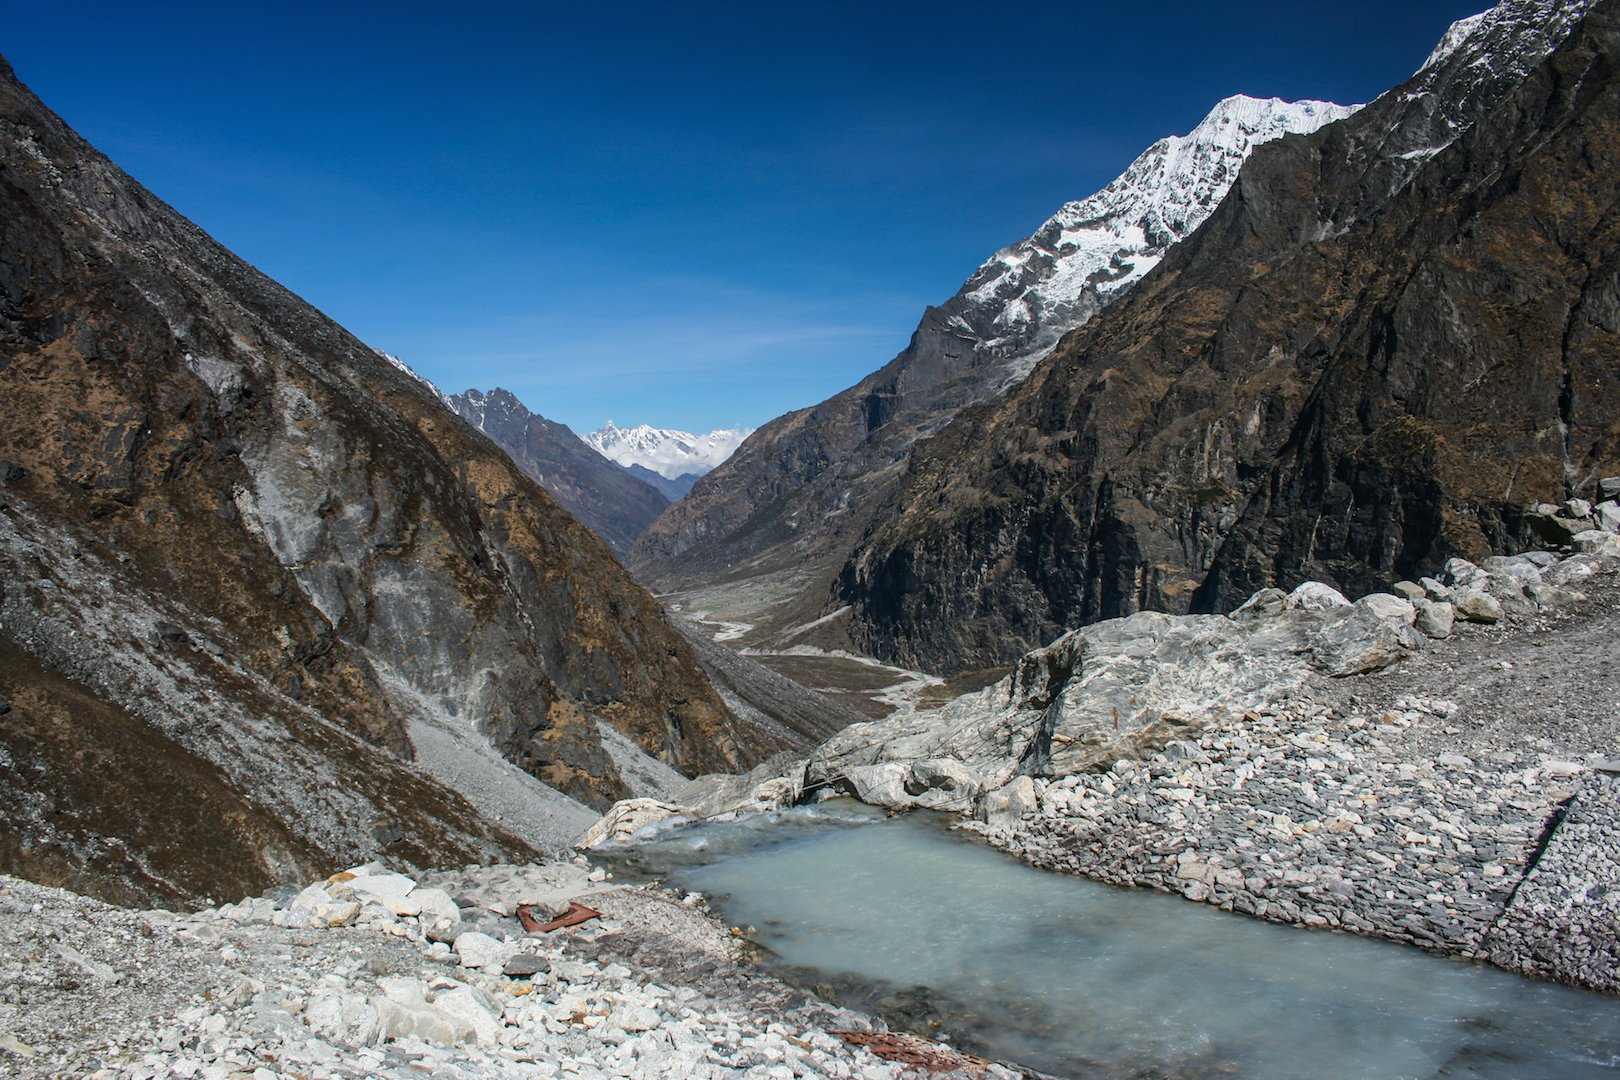 The controlled exit channel built in 2000 to lower the level of the Tsho Rolpa Glacial Lake